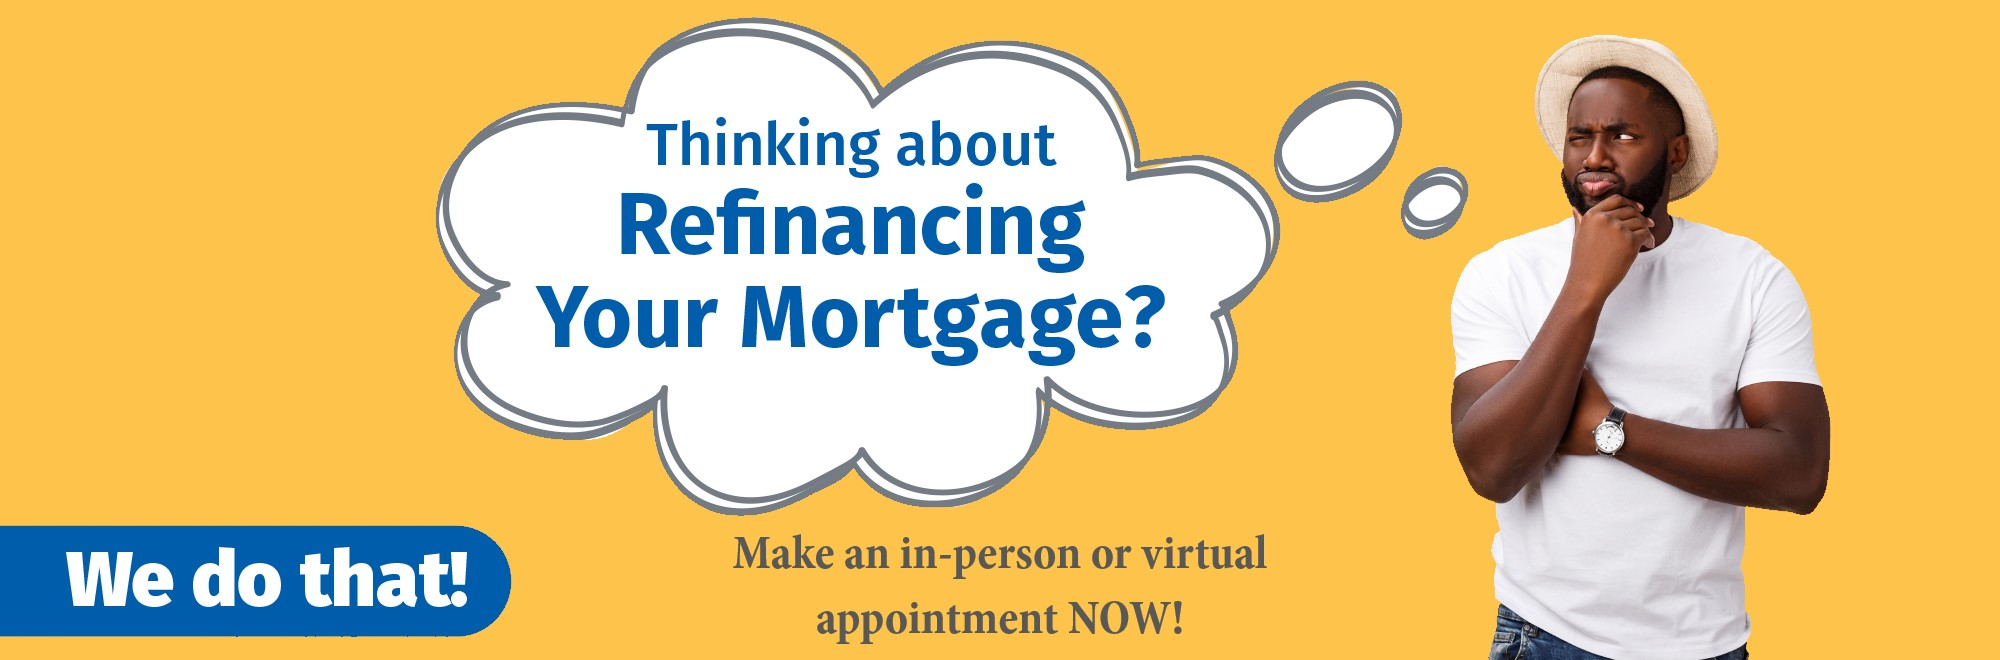 Refinance your mortgage loan with us today!